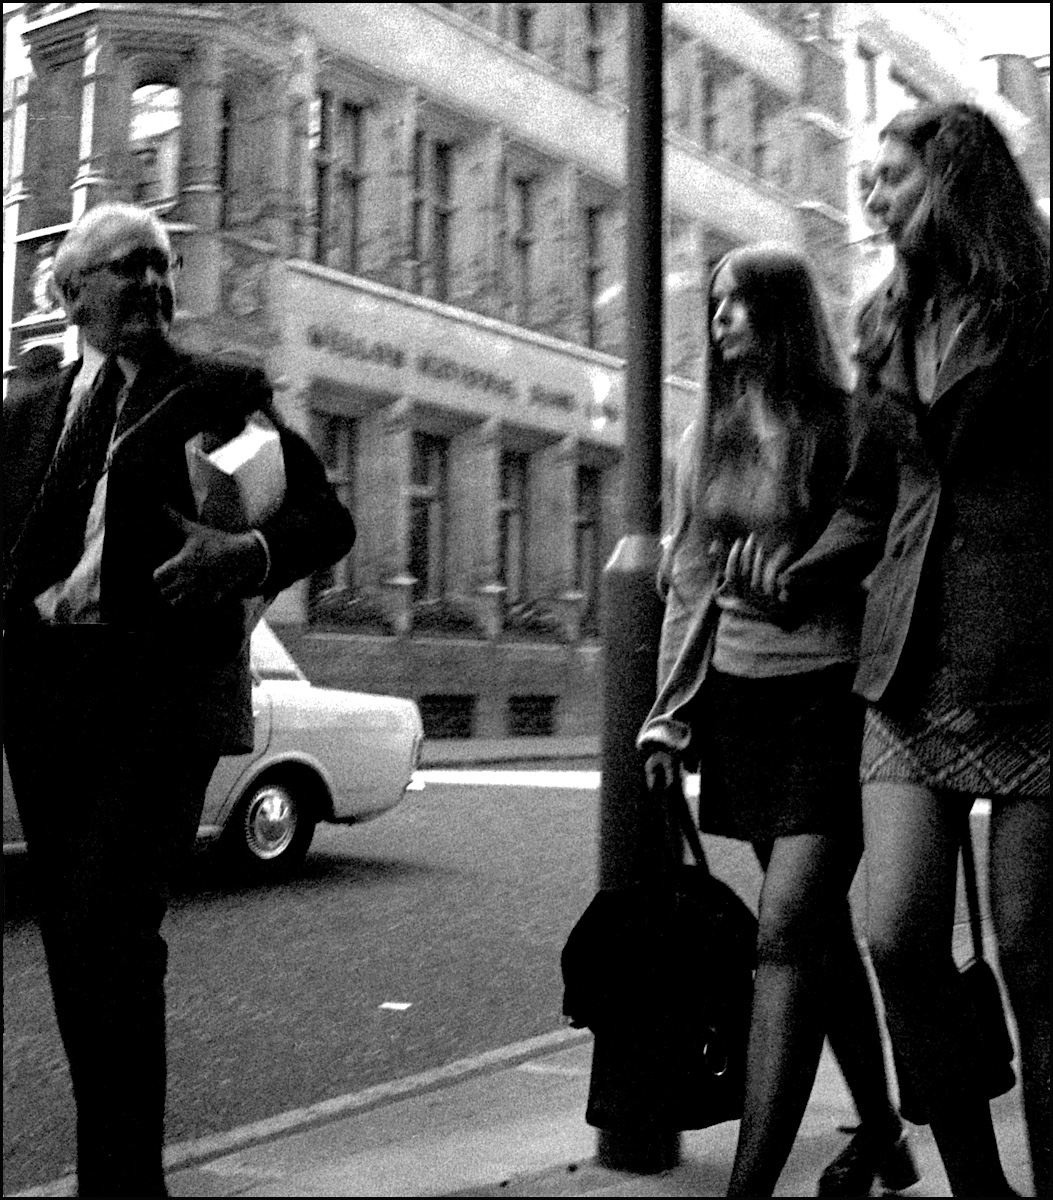 London In 1973, In All Its Grainy Black And White Glory